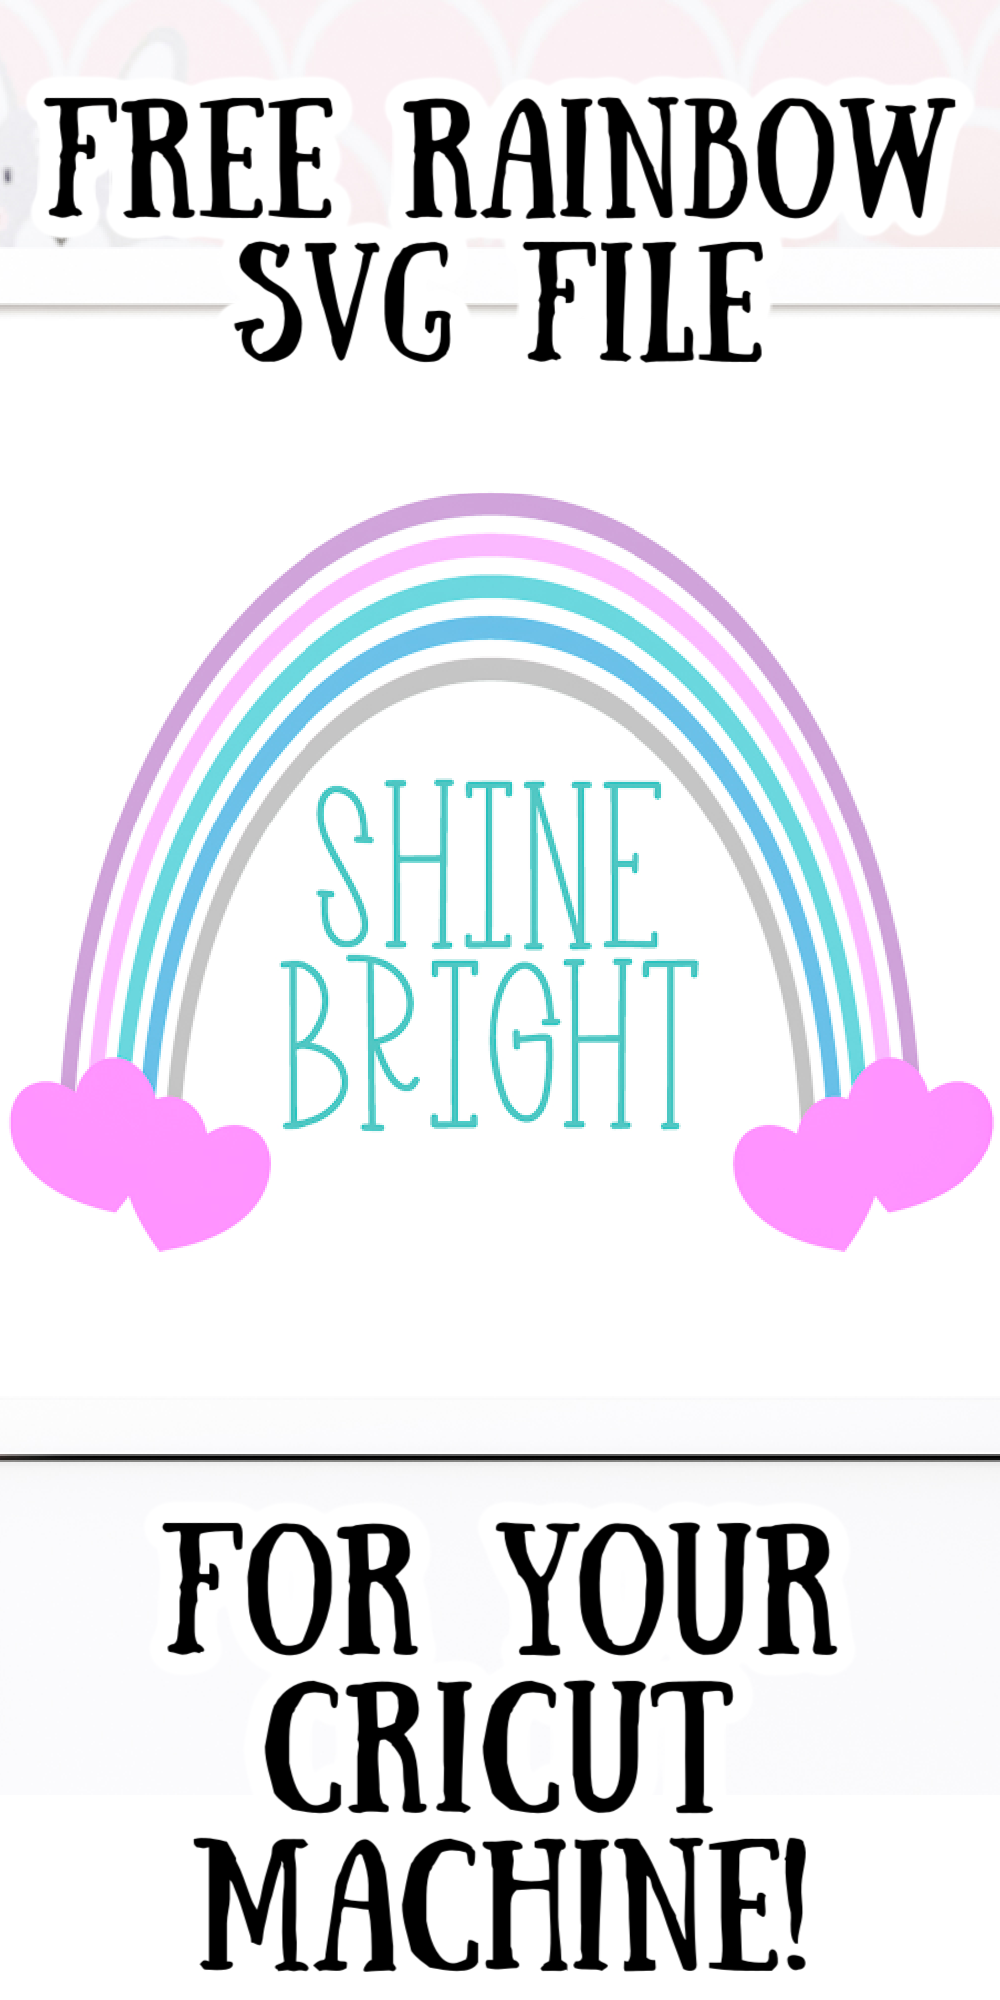 free rainbow svg file